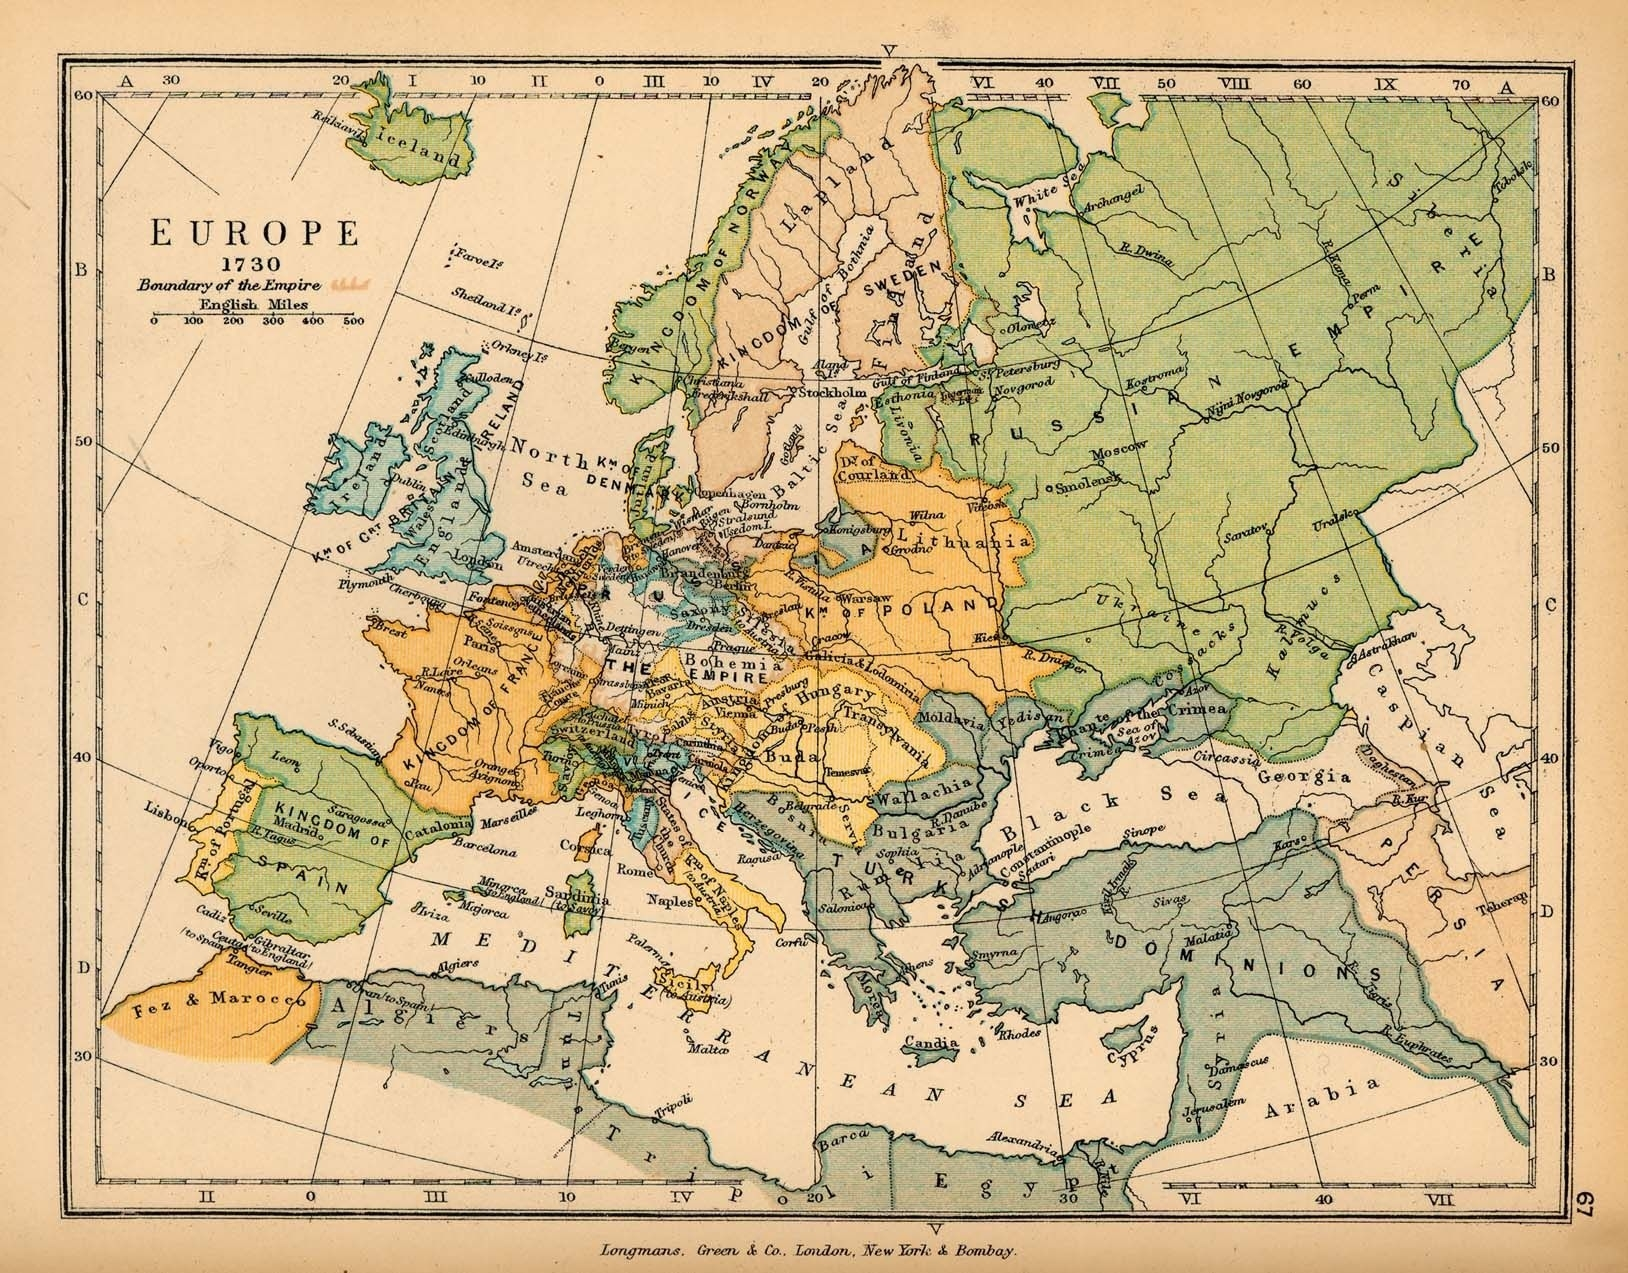 Historical Map Of Europe In 1730 | Germany | Historical Maps, Map intended for Old World Map Of Germany